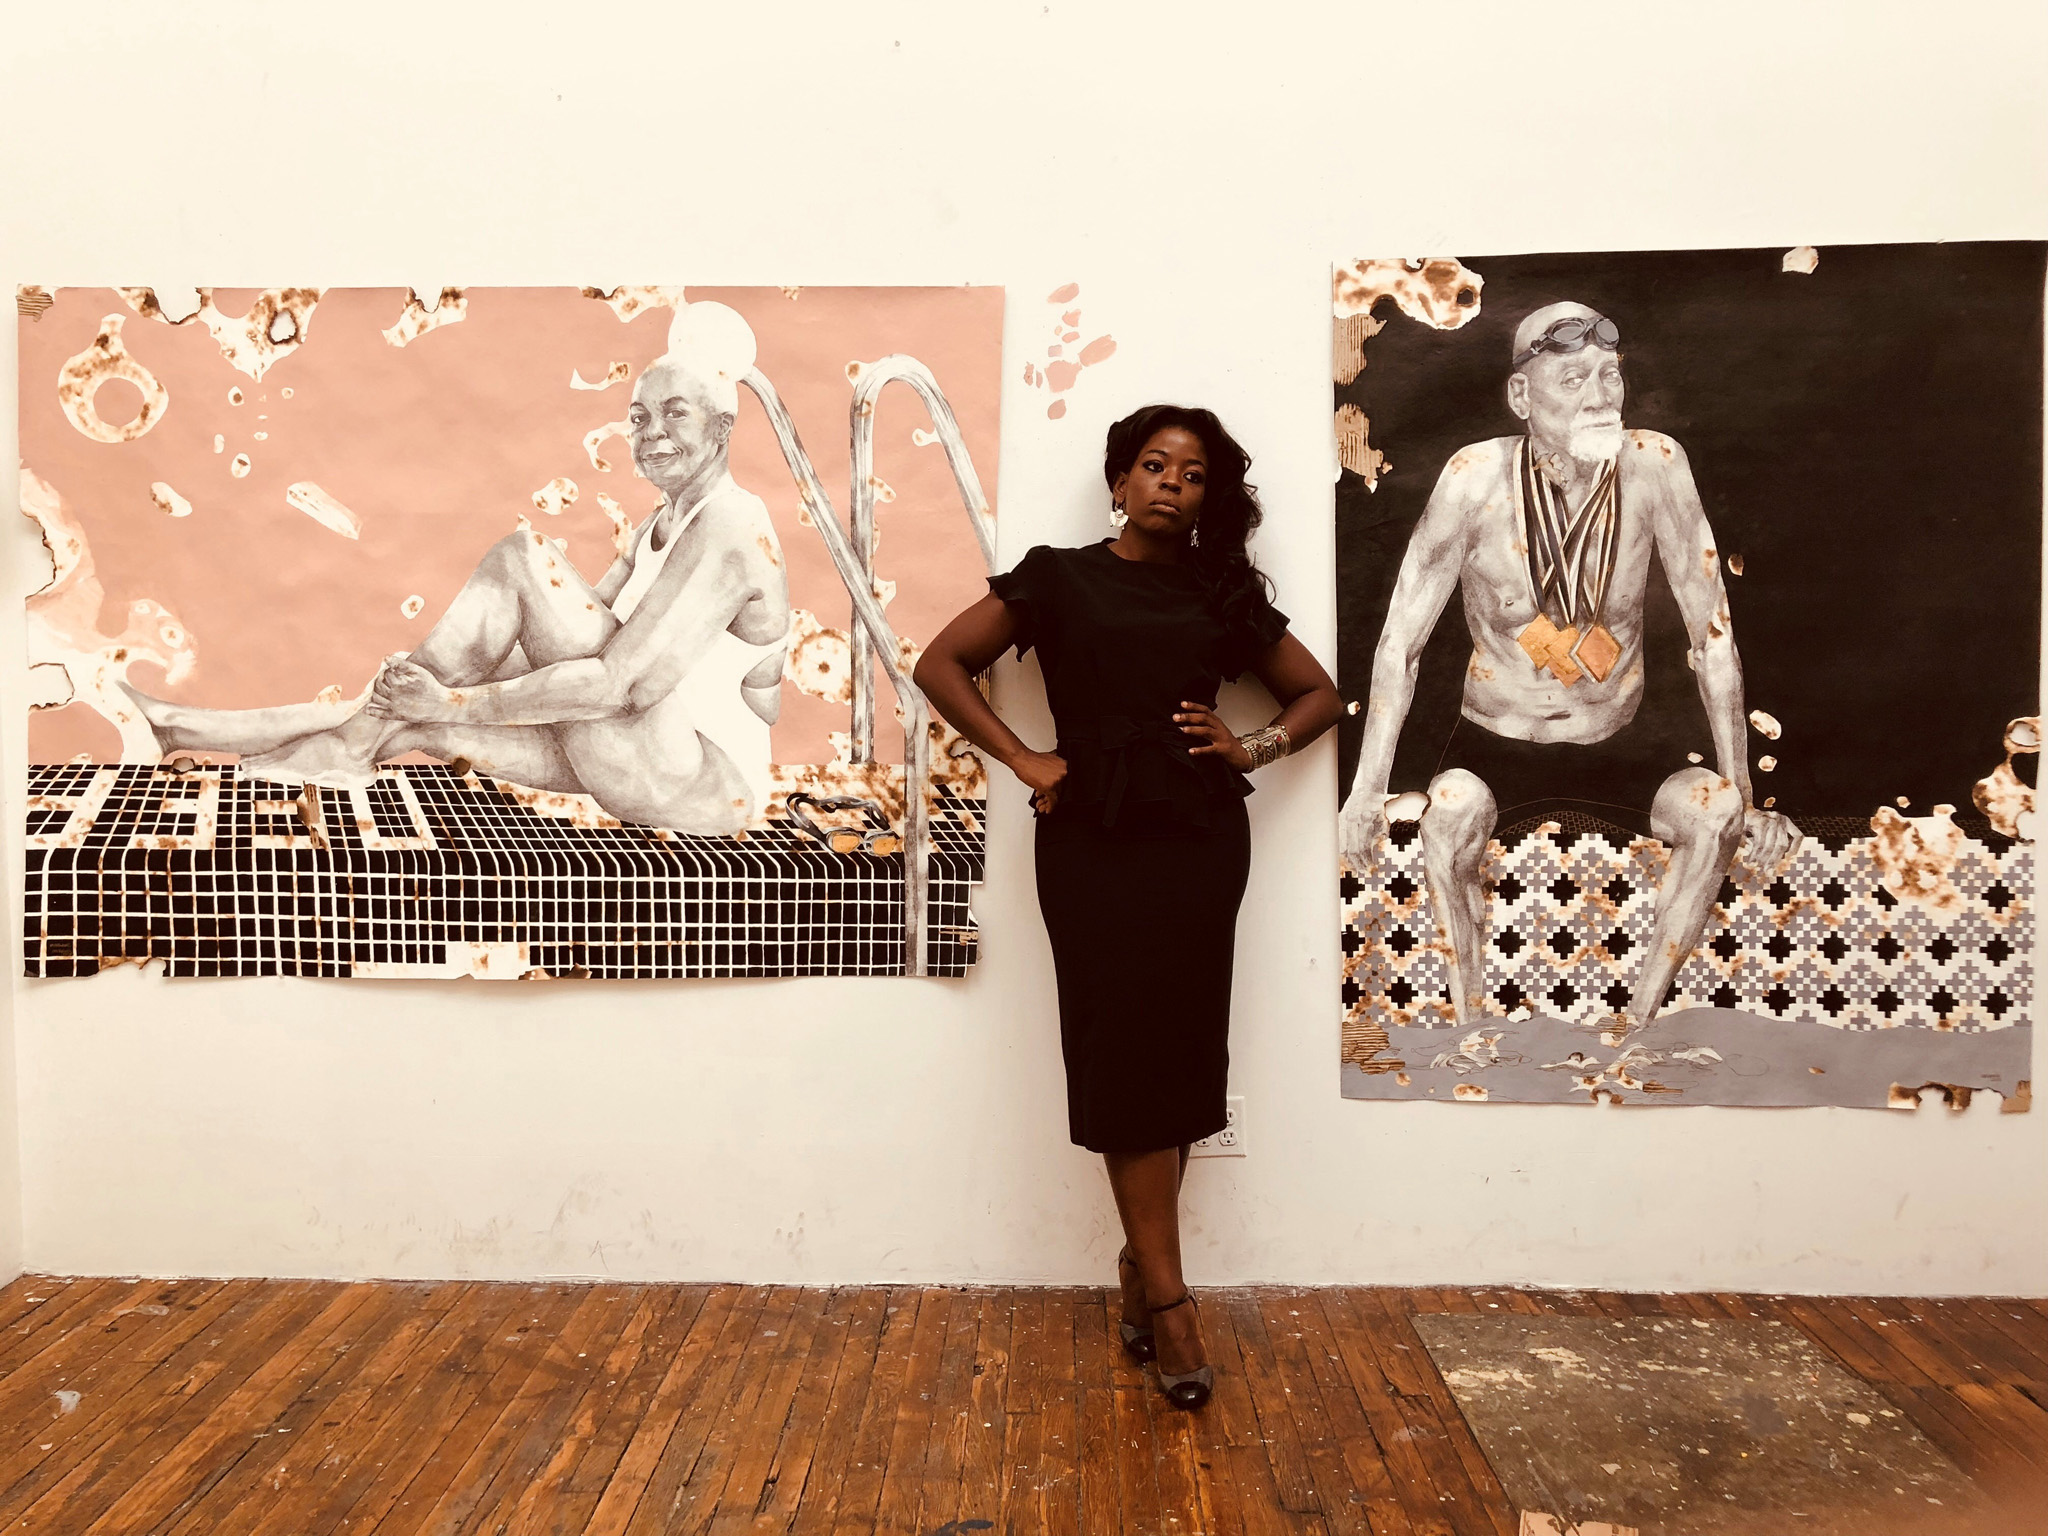 Modupeola Fadugba in the studio in front of works from Dreams from the Deep End. Image courtesy of the artist and Gallery 1957